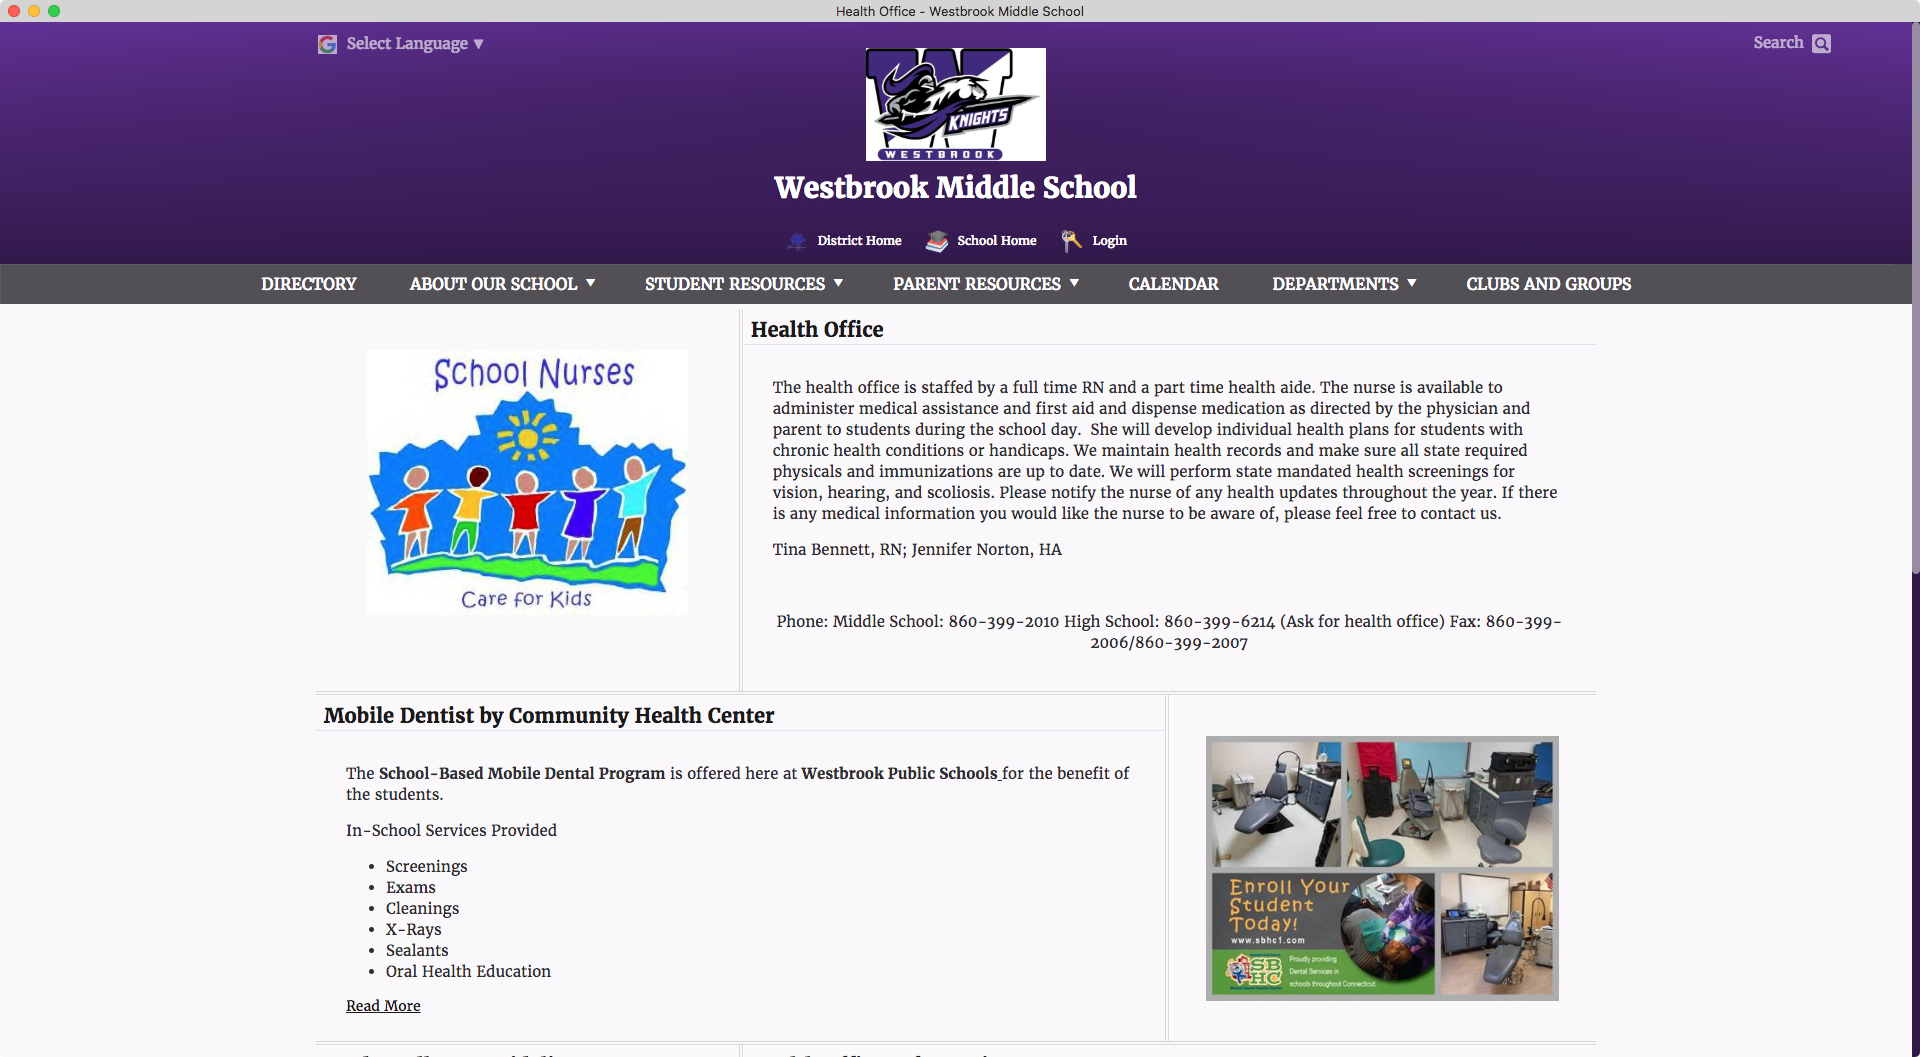 Westbrook Middle School Health Department Webpage